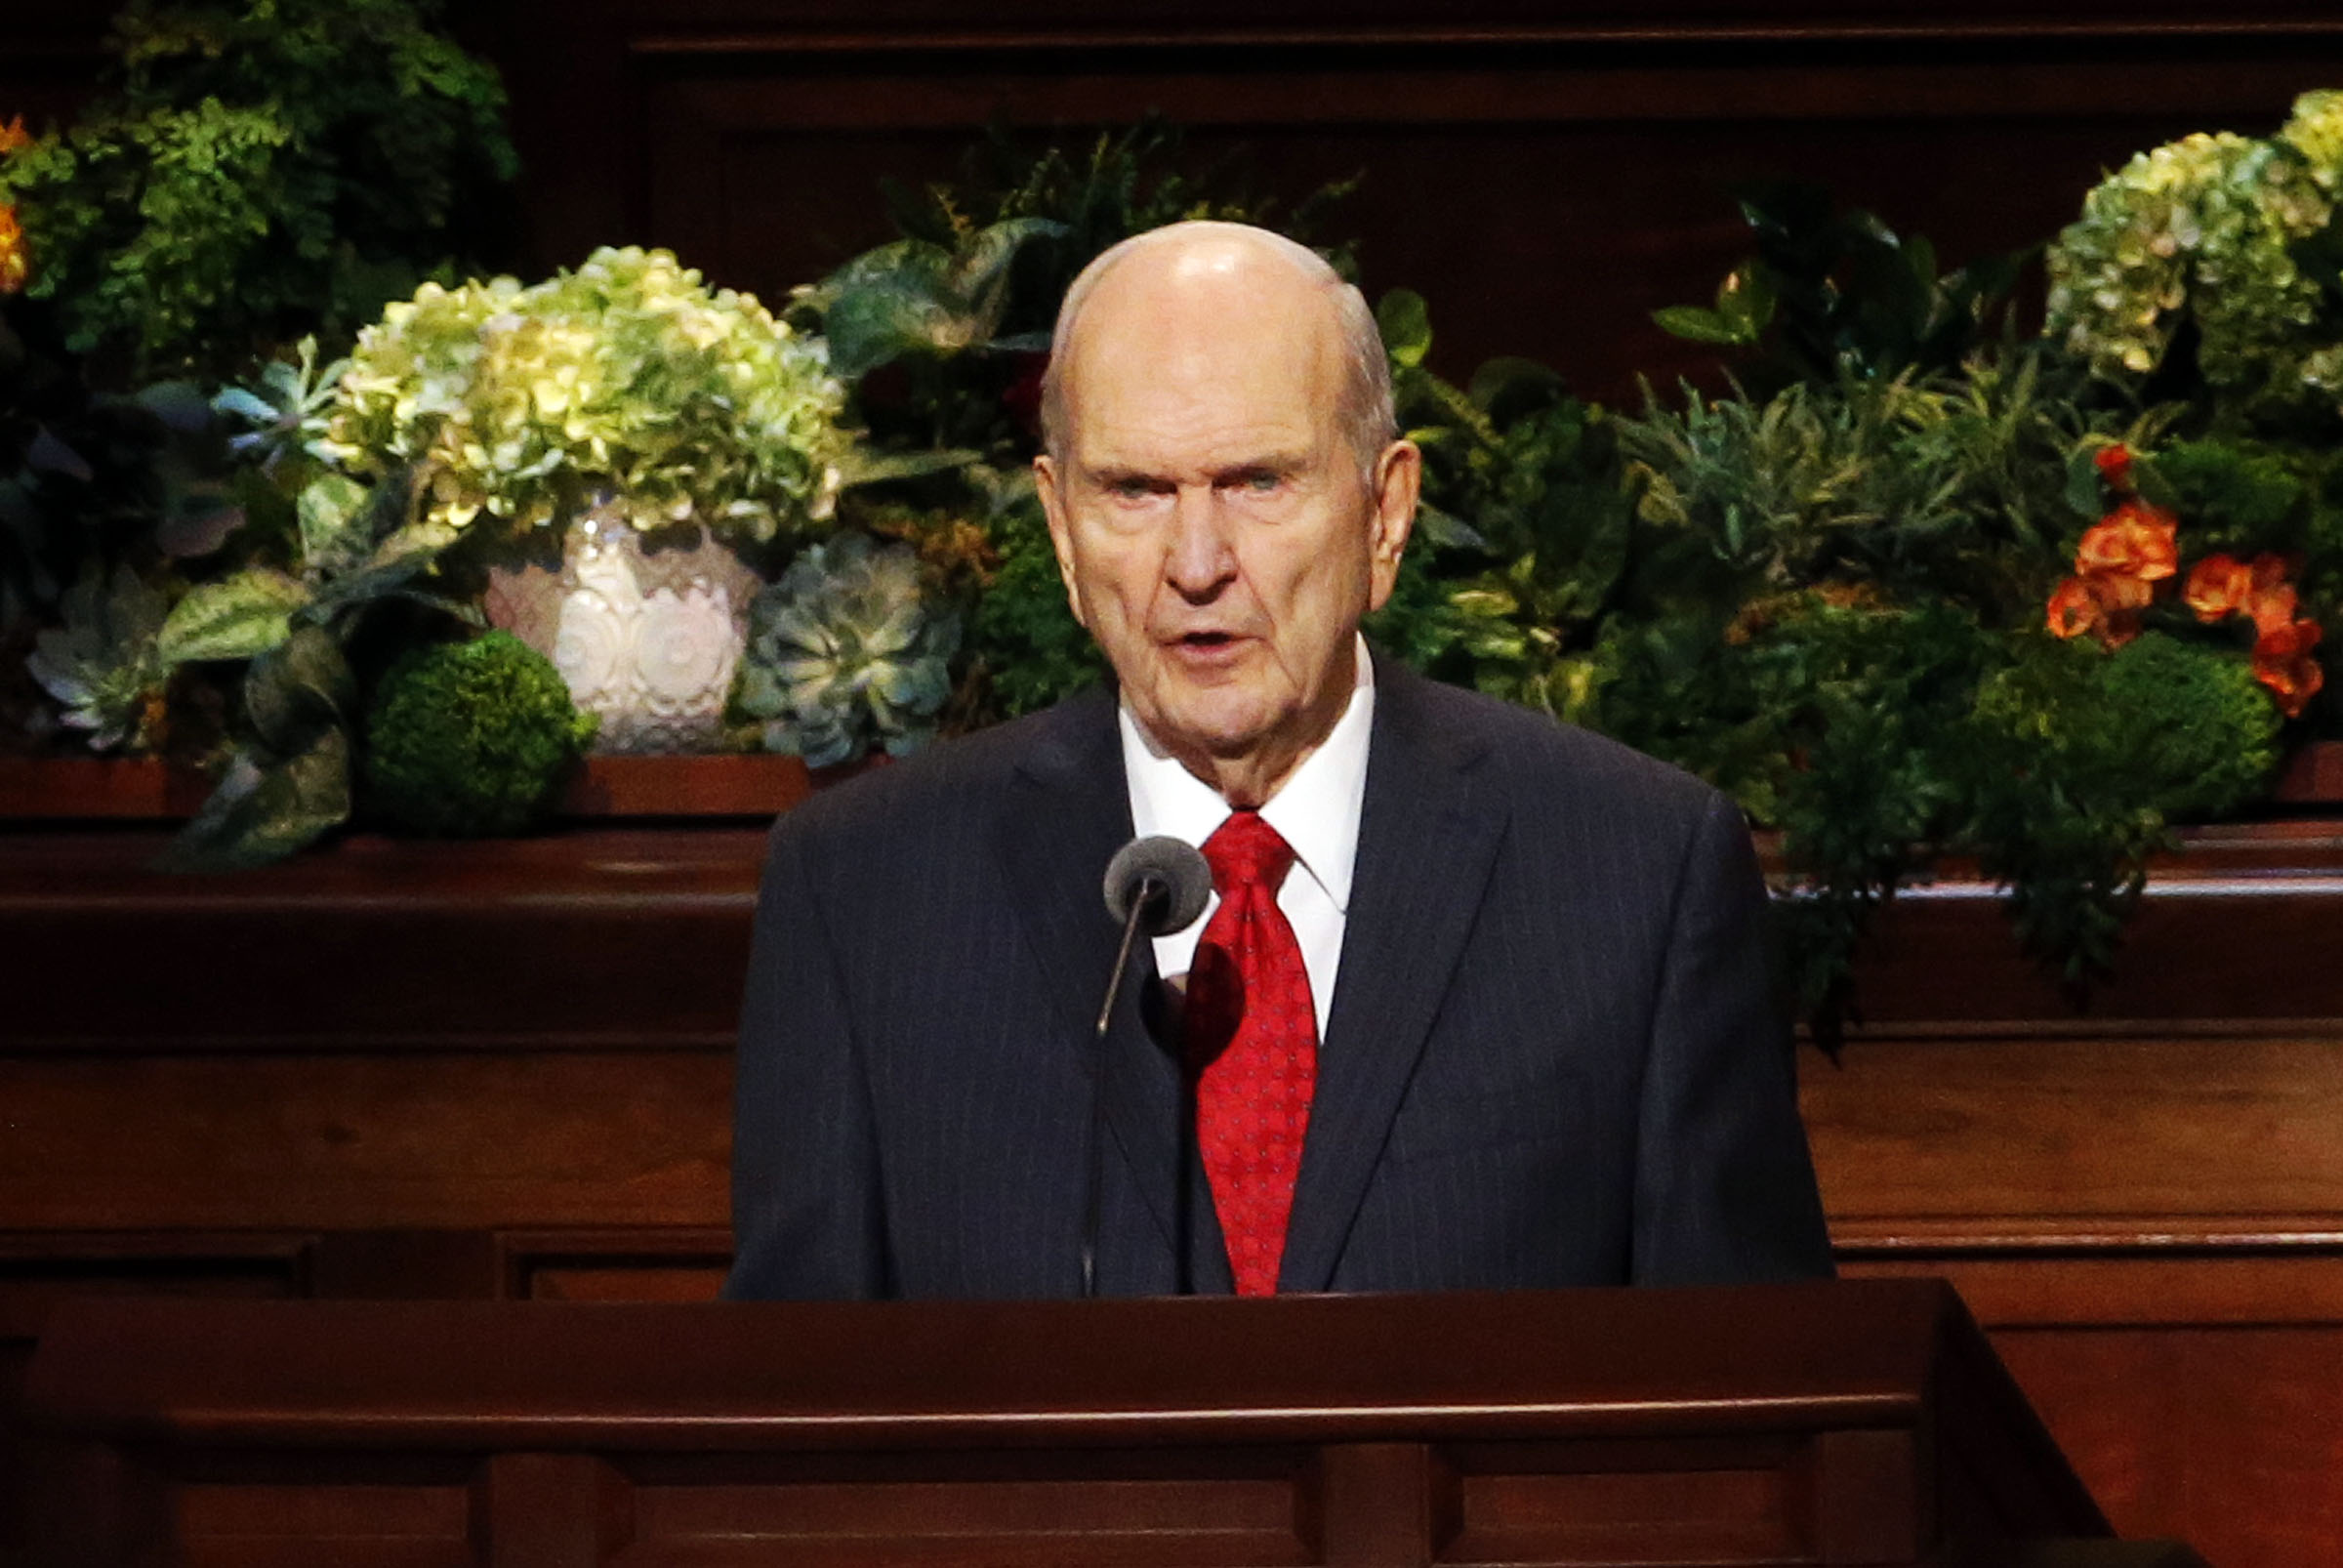 President Russell M. Nelson of The Church of Jesus Christ of Latter-day Saints speaks during the priesthood session of the 189th Annual General Conference in the Conference Center in Salt Lake City on Saturday, April 6, 2019.